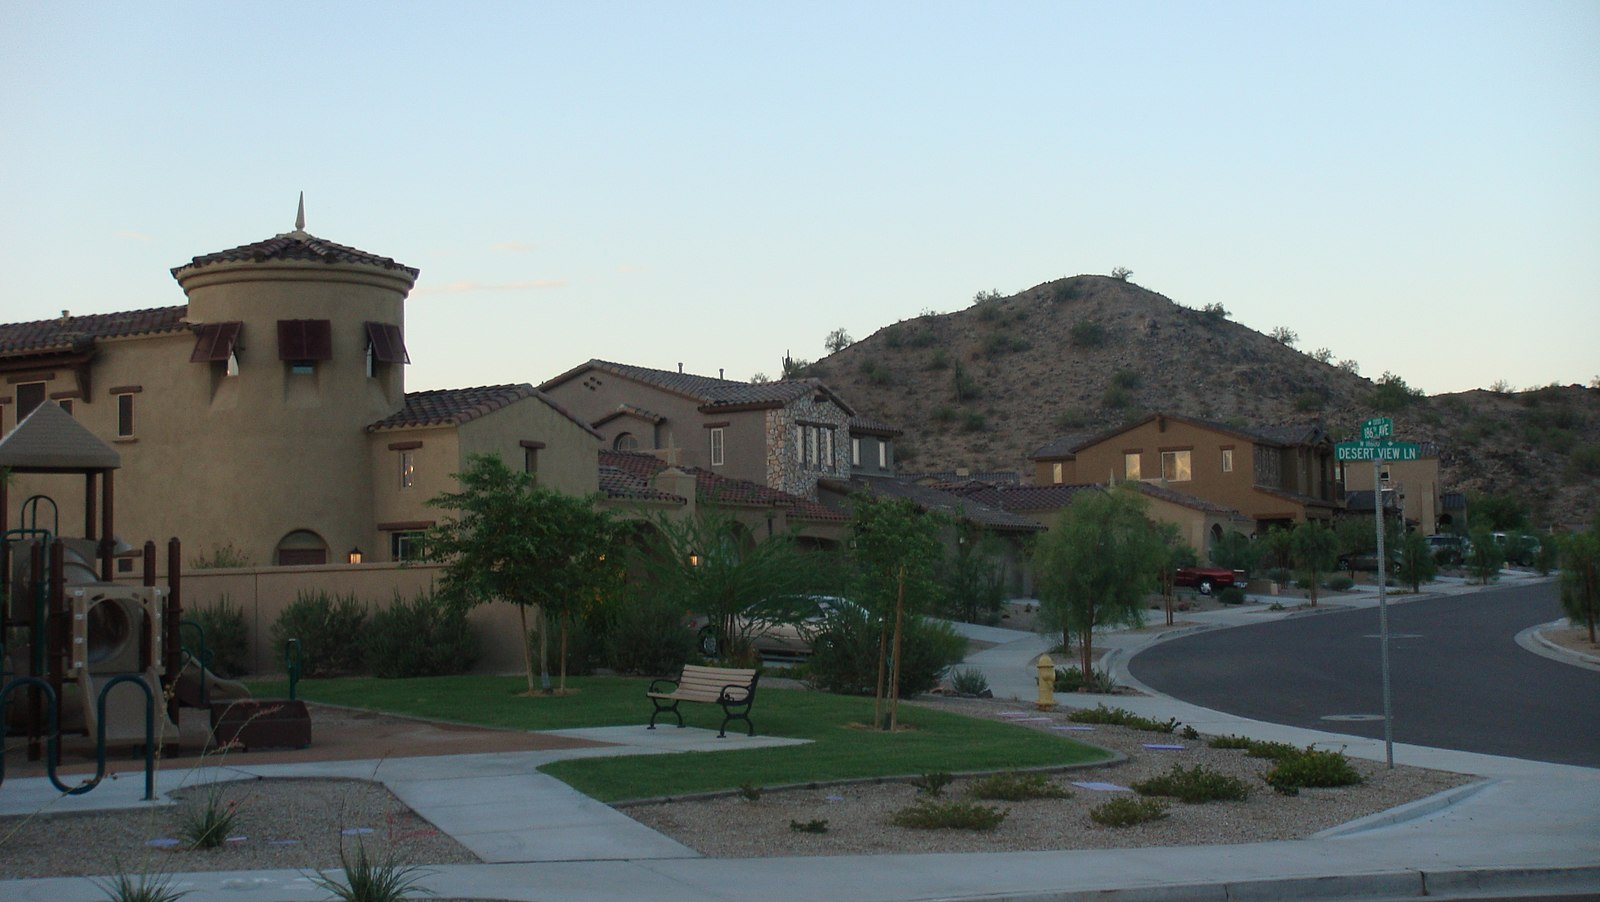 West Valley community image